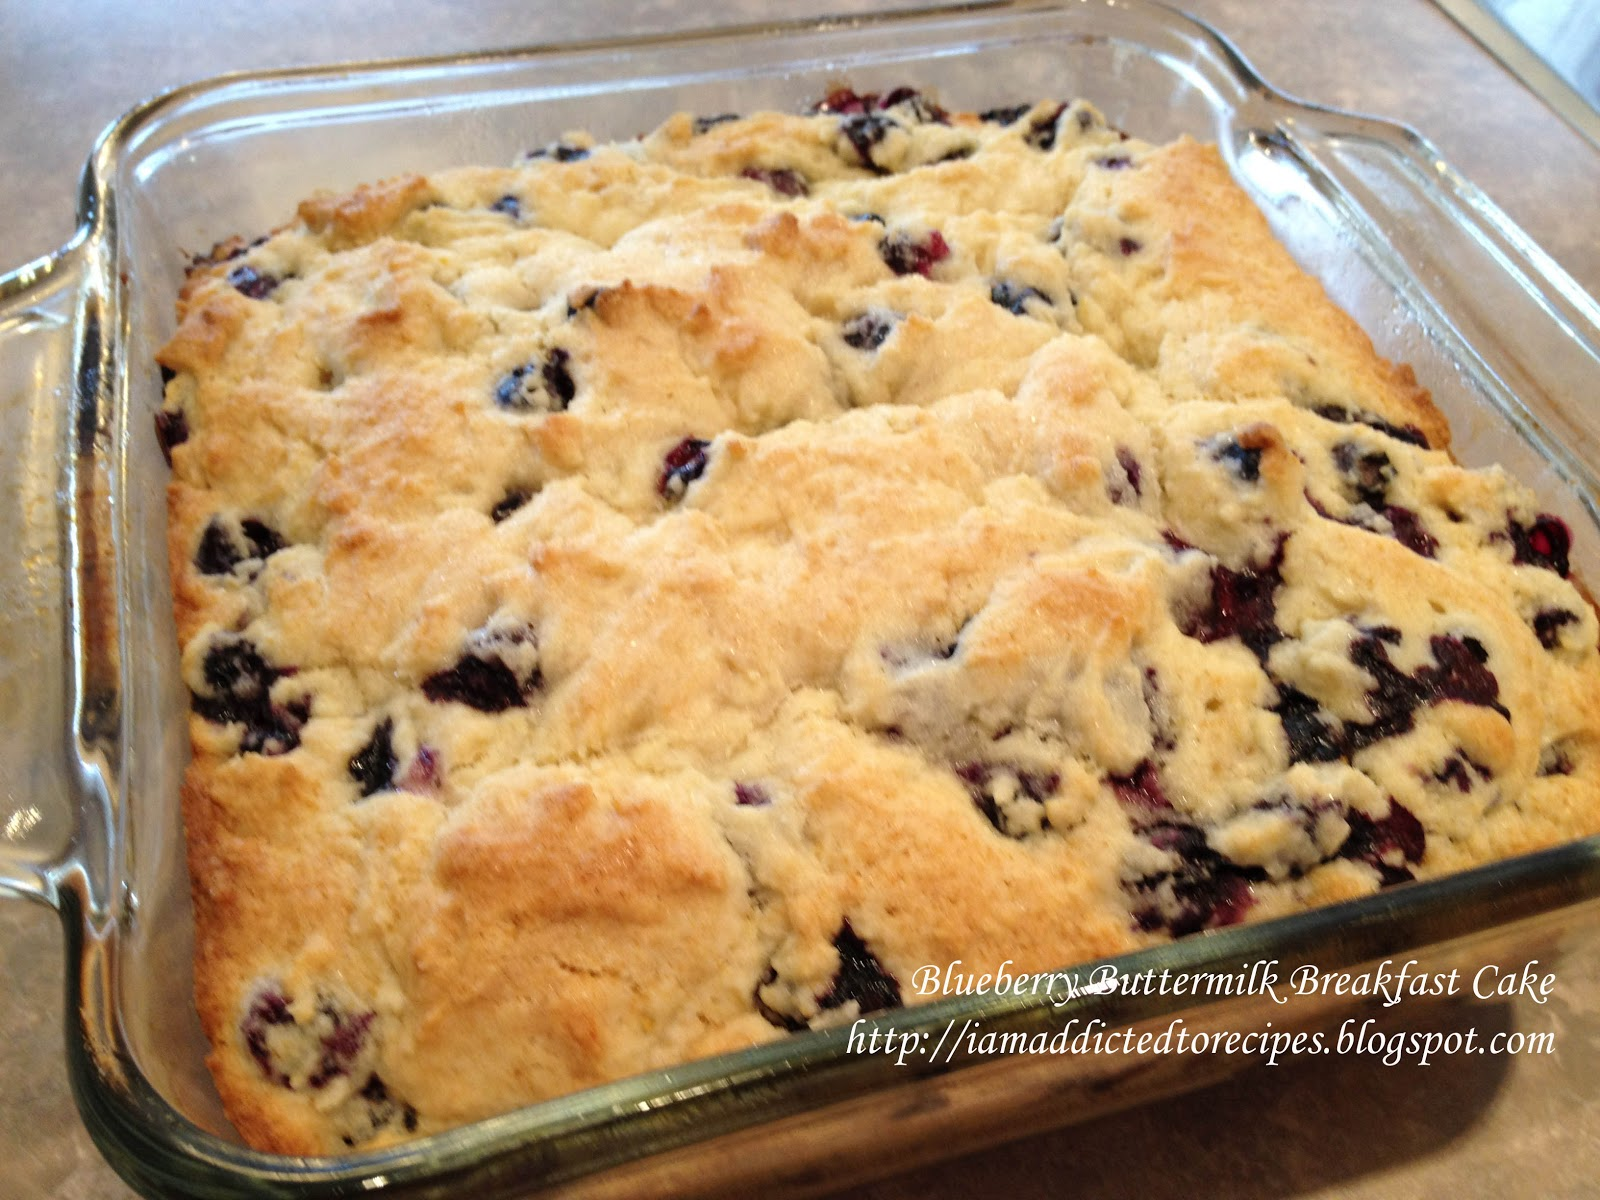 Blueberry Buttermilk Breakfast Cake | Addicted to Recipes